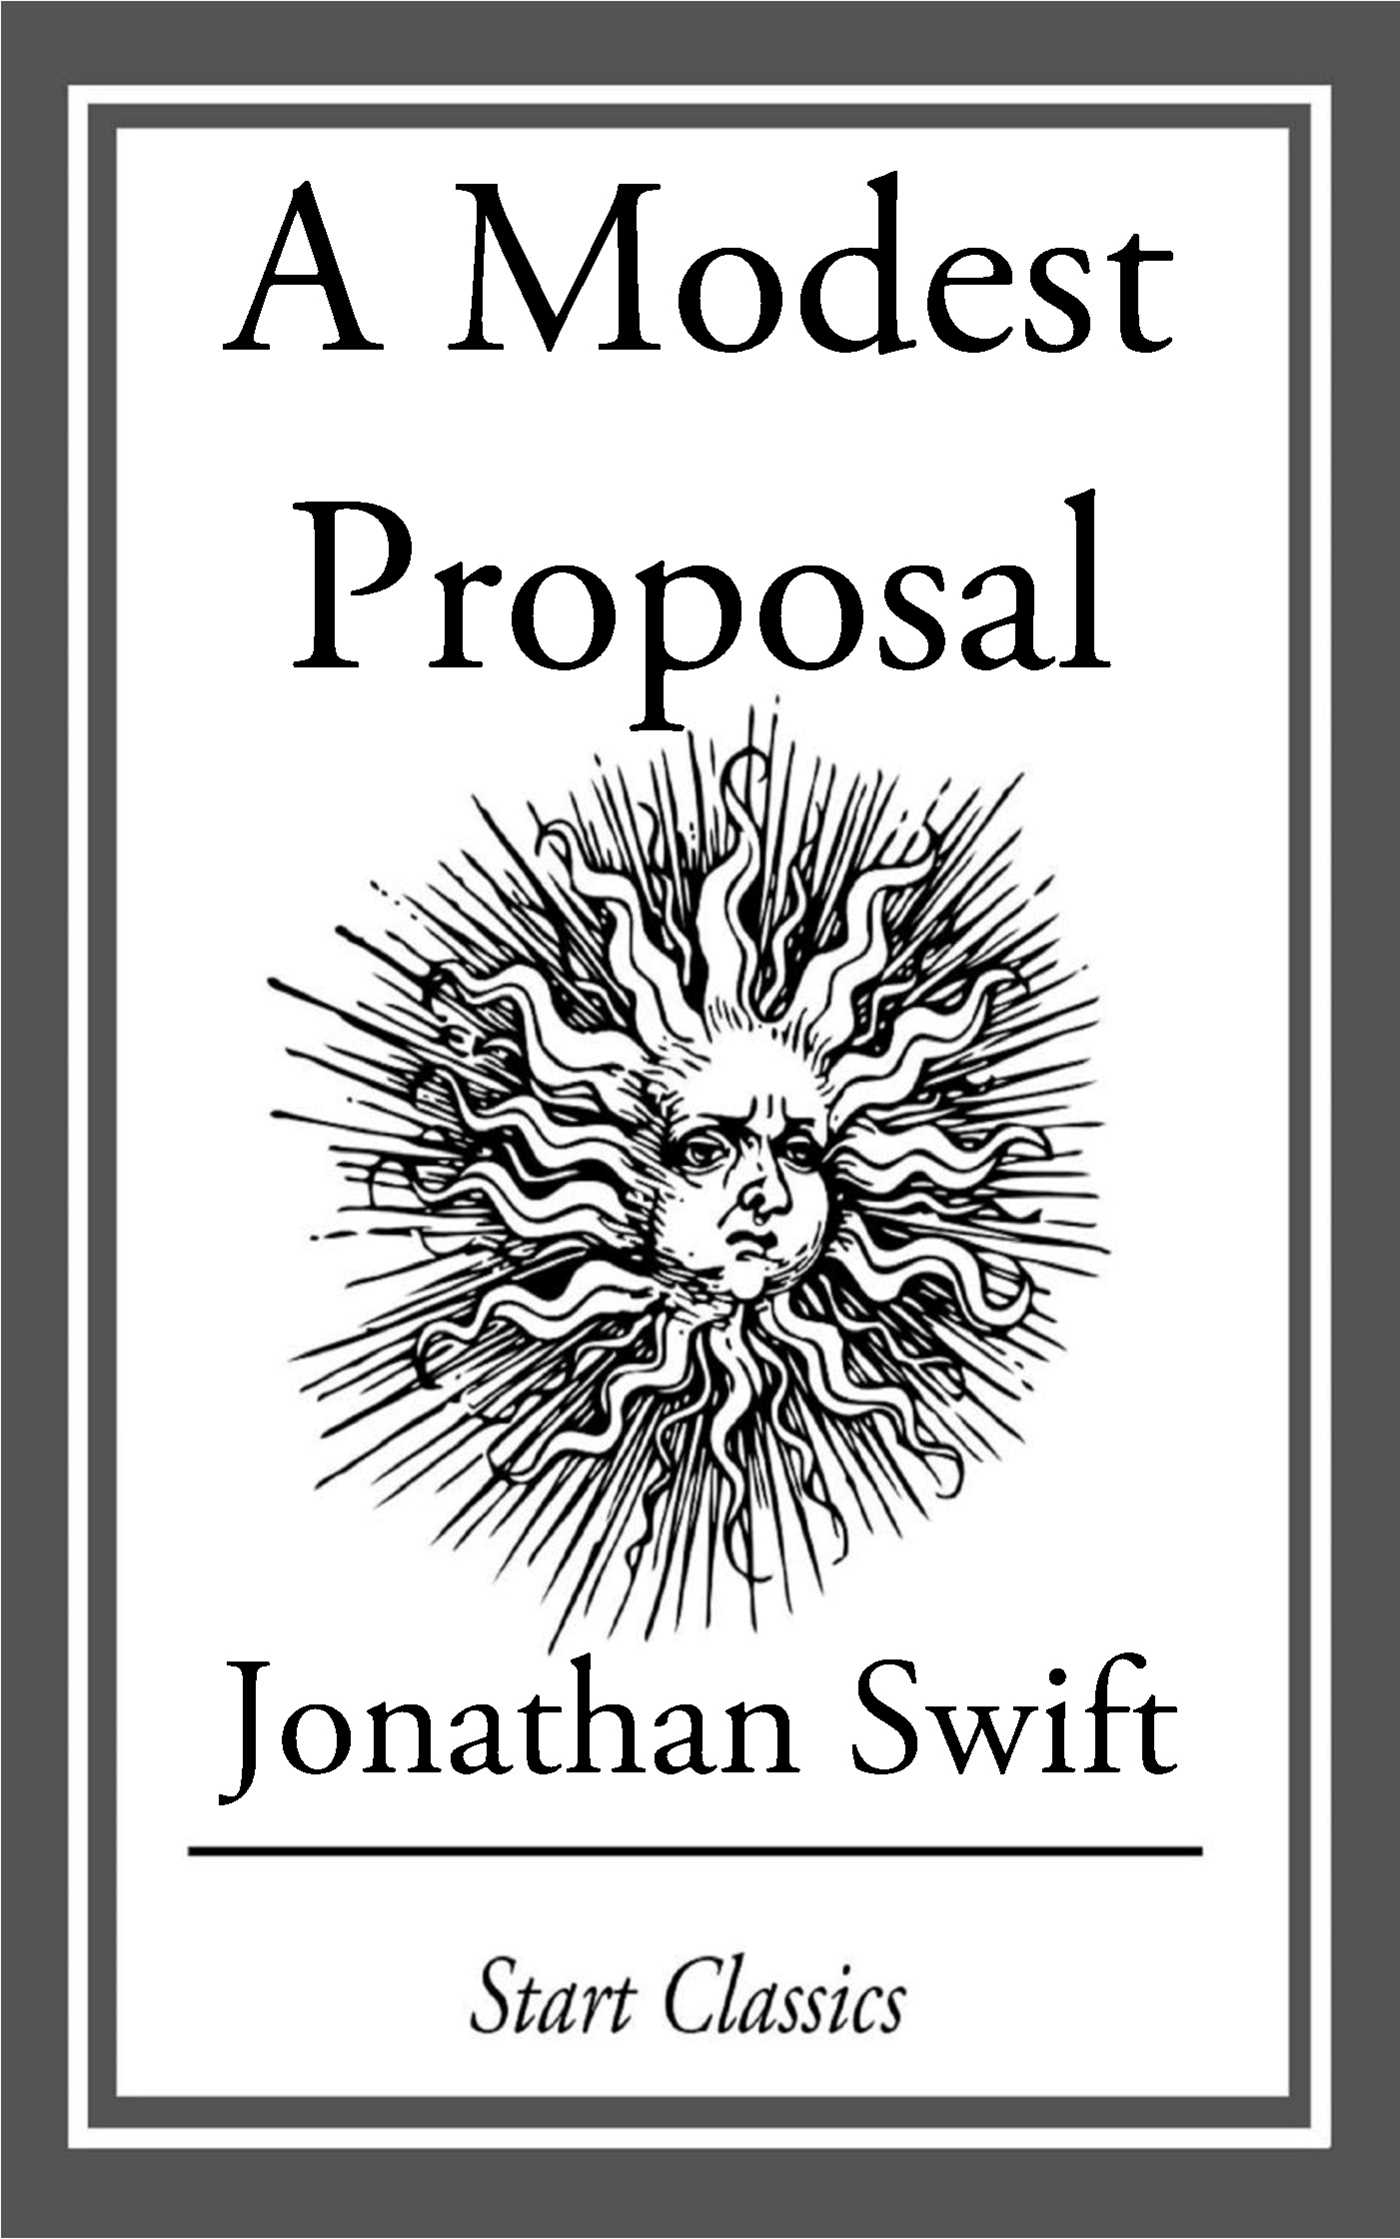 an analysis of jonathan swifts a modest proposal essay Jonathan swift's satirical essay from 1729  (1726) and a modest proposal (1729) this proposal, where he suggests that the irish eat their own children.